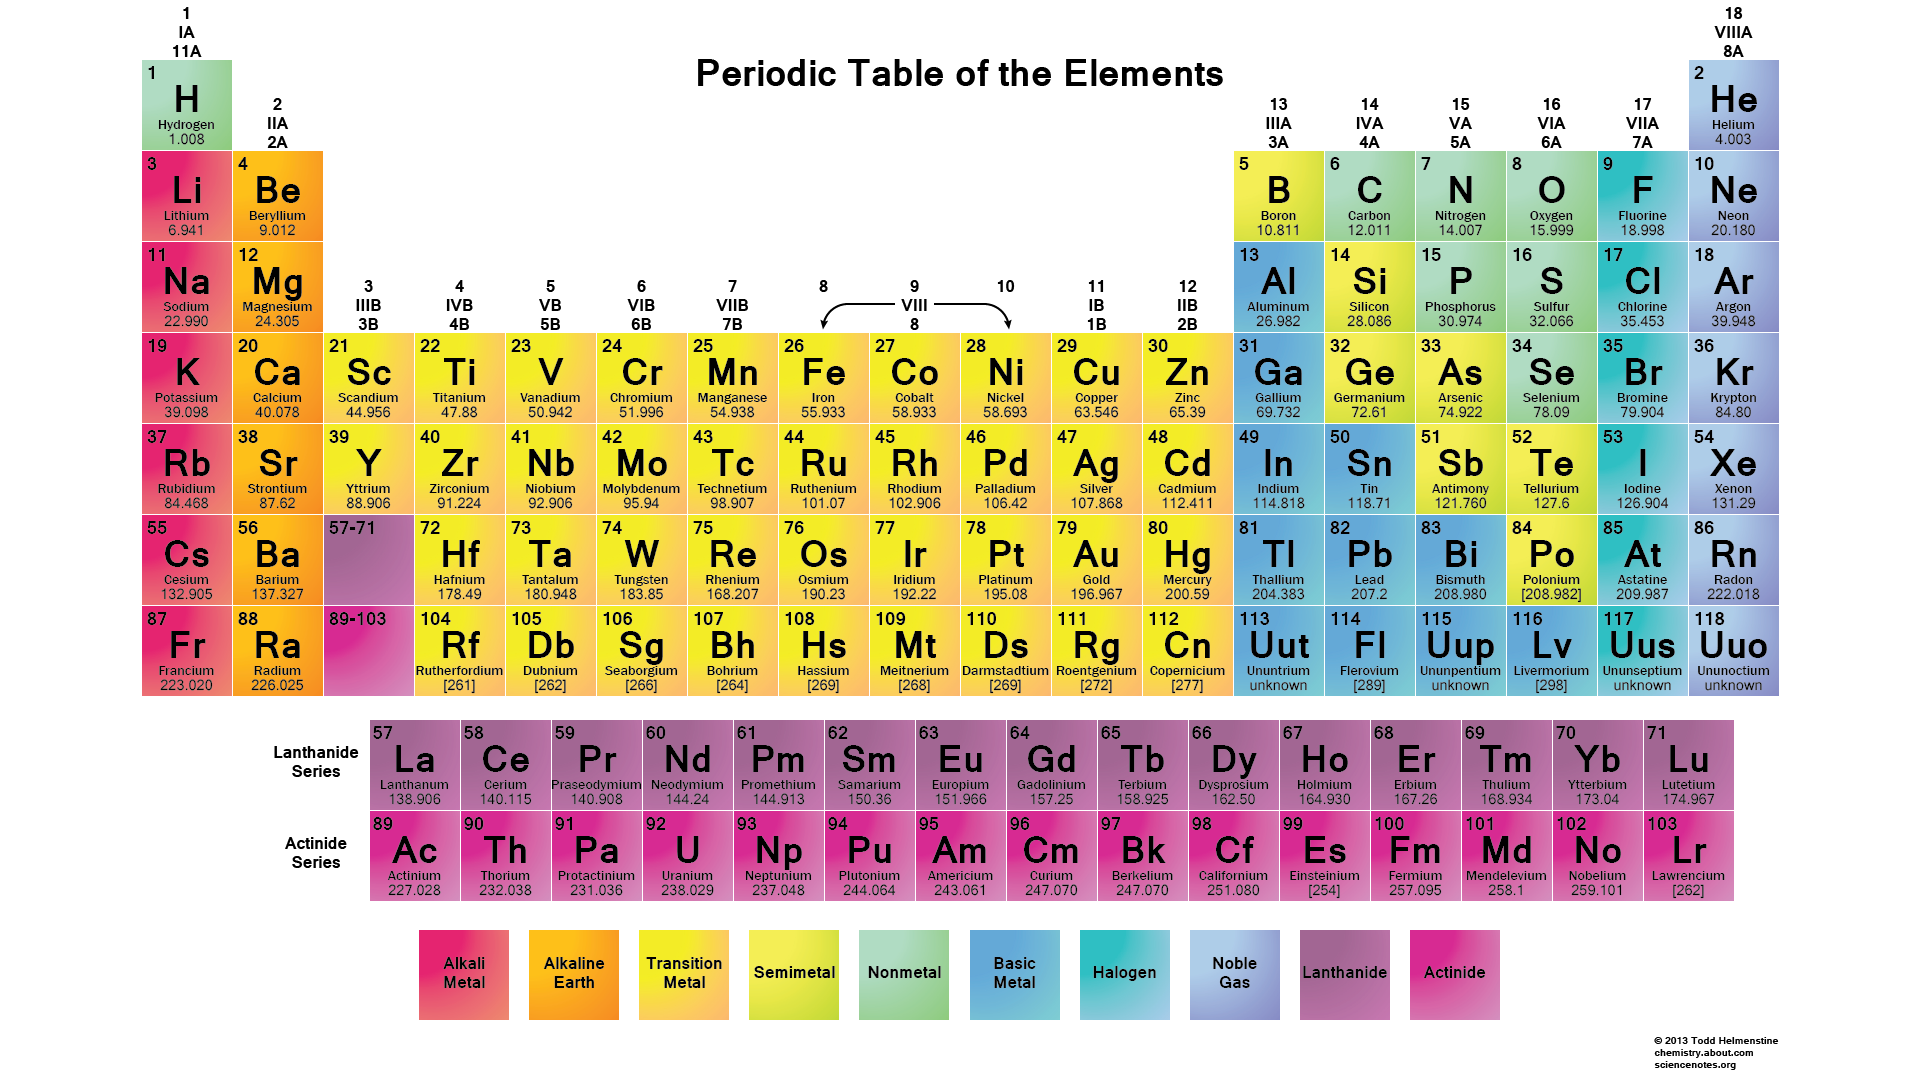 Periodic table comers chemistry classroom a table of the chemical elements arranged in order of atomic number usually in rows so that elements with similar atomic structure and hence similar urtaz Image collections